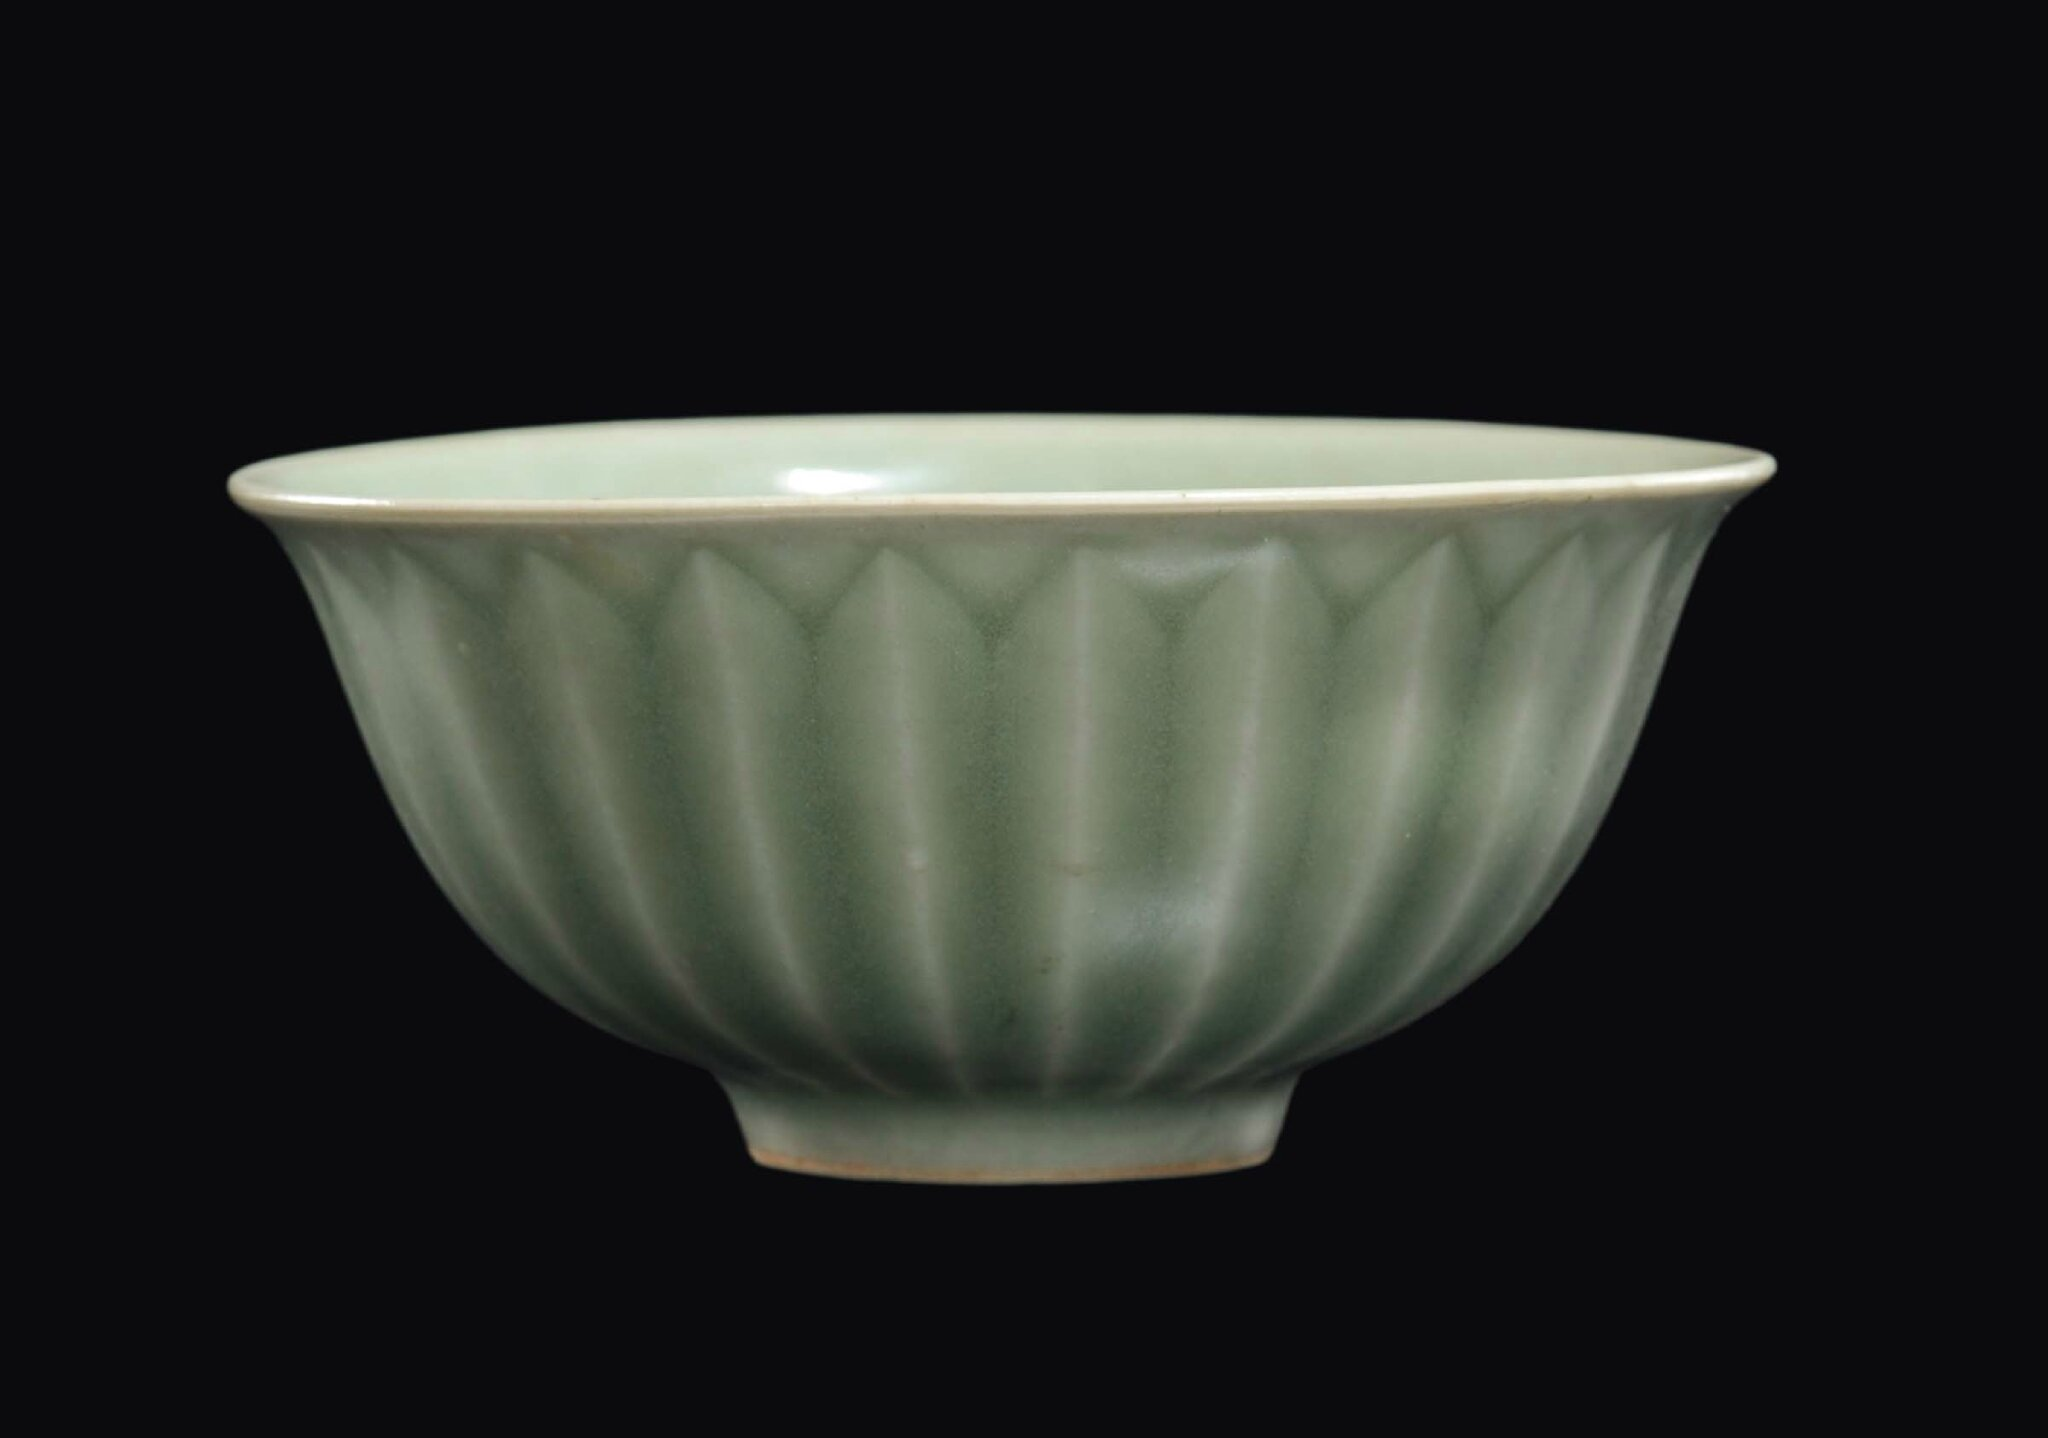 A Longquan Celadon porcelain bowl, China, Yuan Dynasty, 14th century